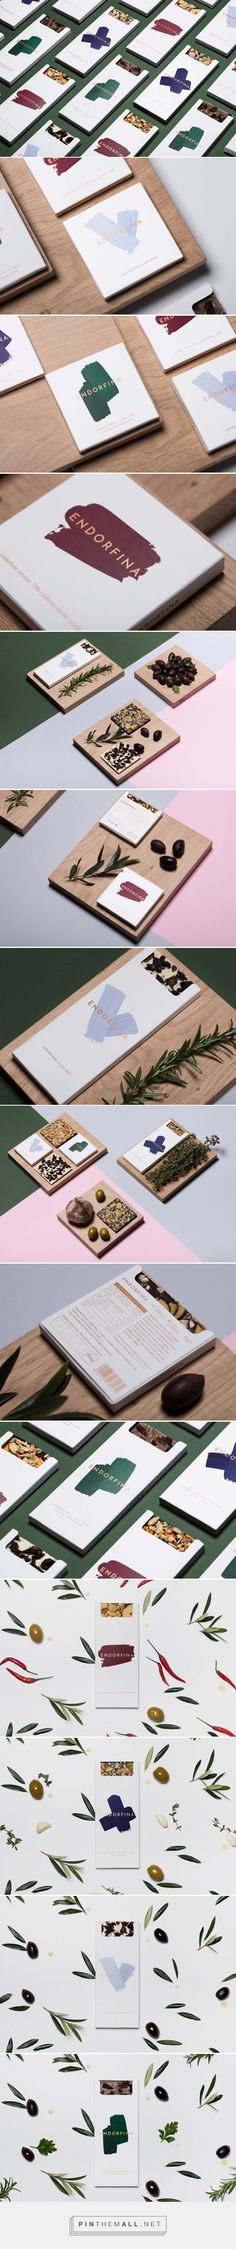 Endorfina Specialty Chocolate Packaging by Marysia Markowska | Fivestar Branding Agency – Design and Branding Agency & Curated Inspiration Gallery